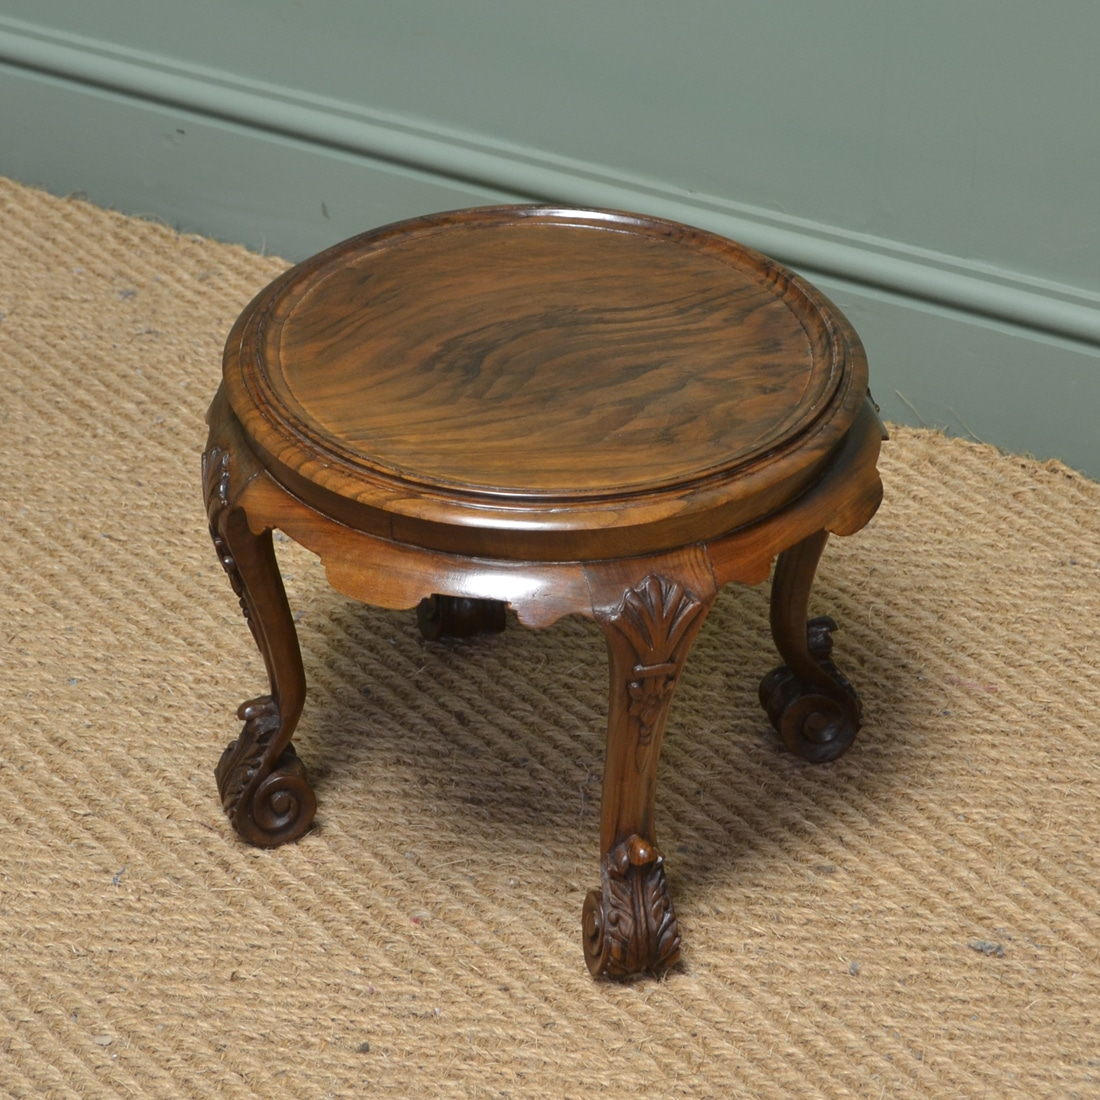 Antique Coffee Table Uk: Small Edwardian Walnut Antique Coffee Table